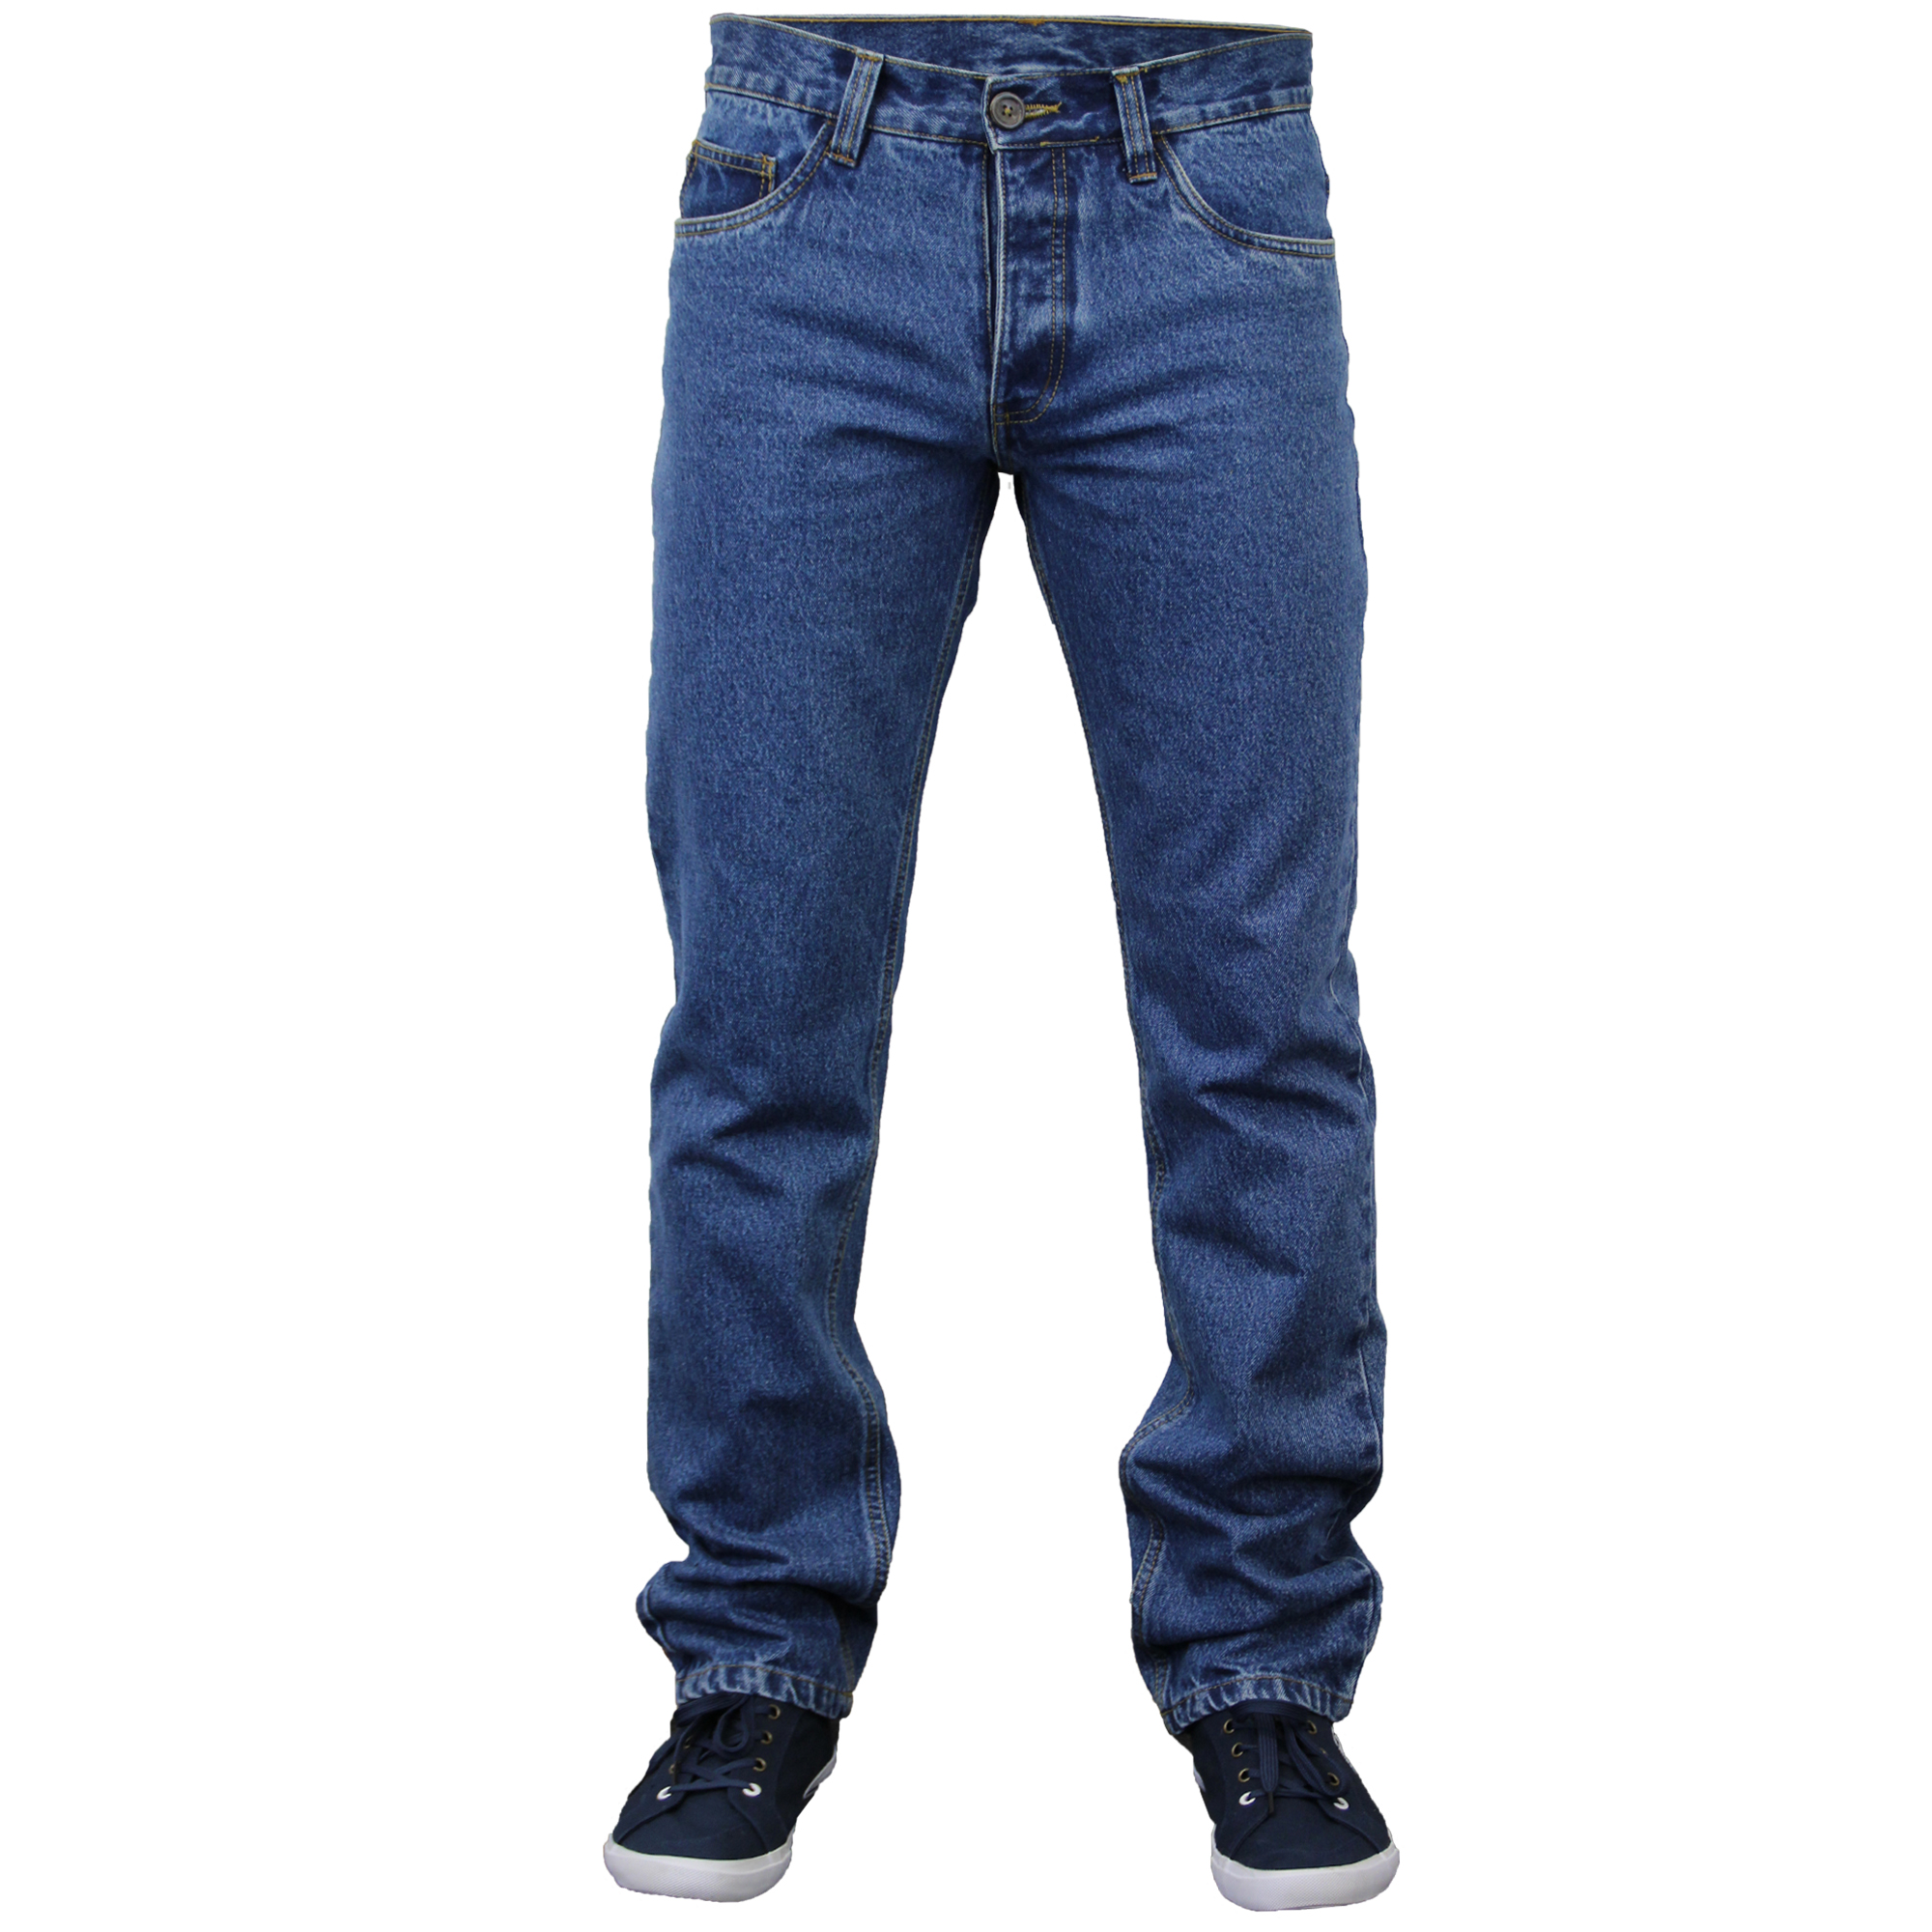 What Clour Shoes With Dark Blue Jeans